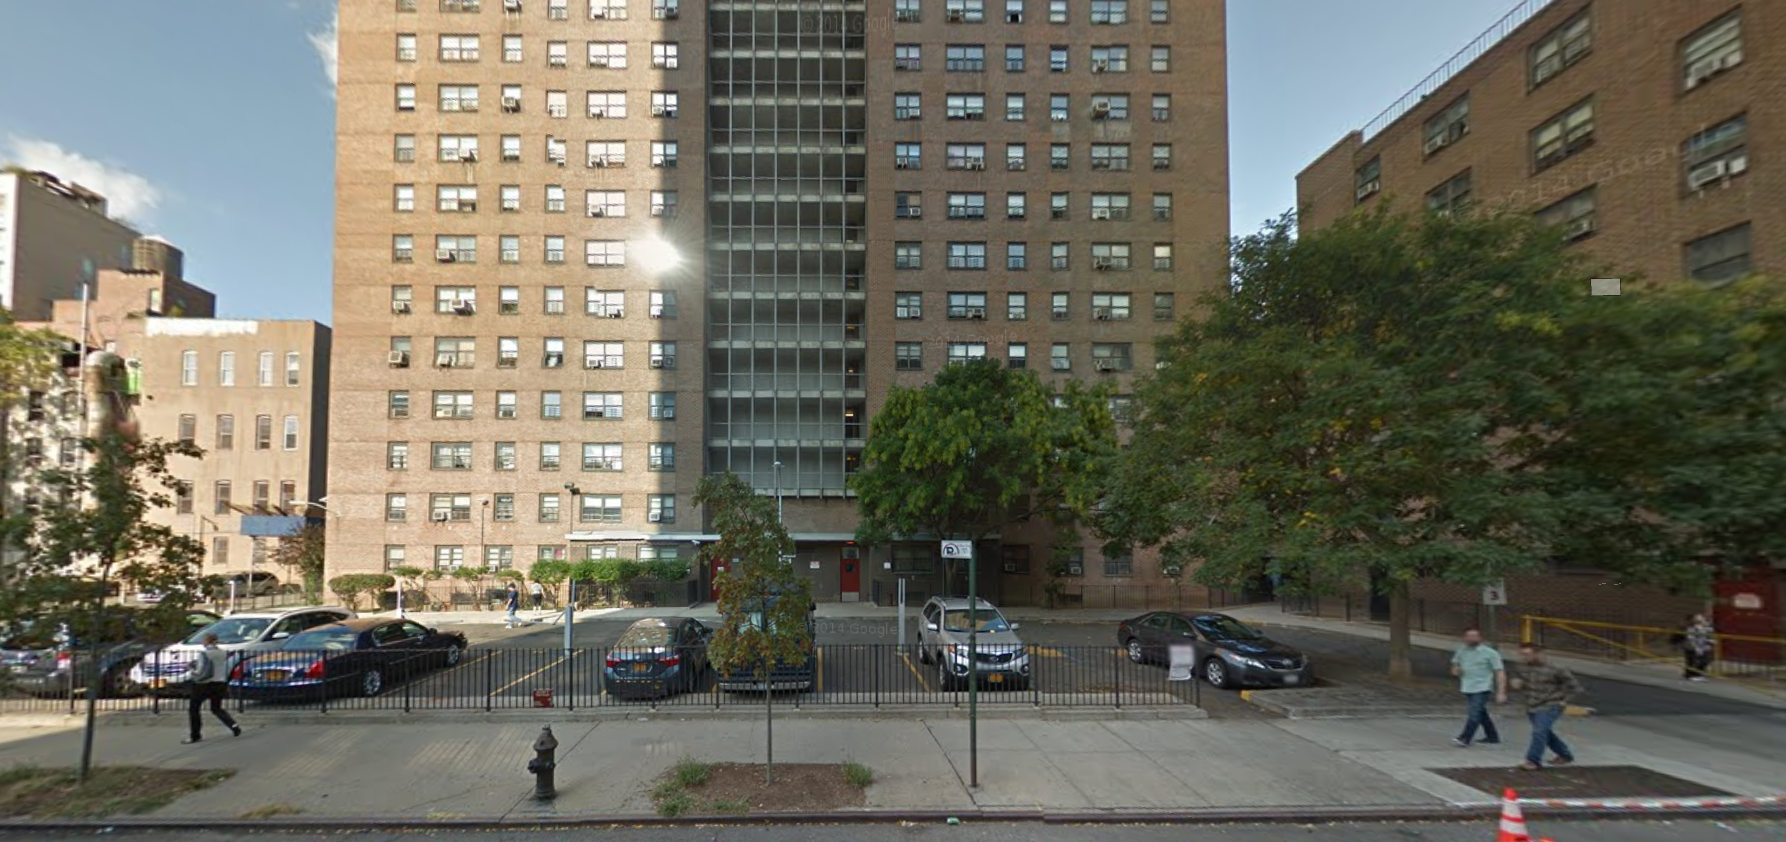 401-413 West 18th Street, image via Google Maps